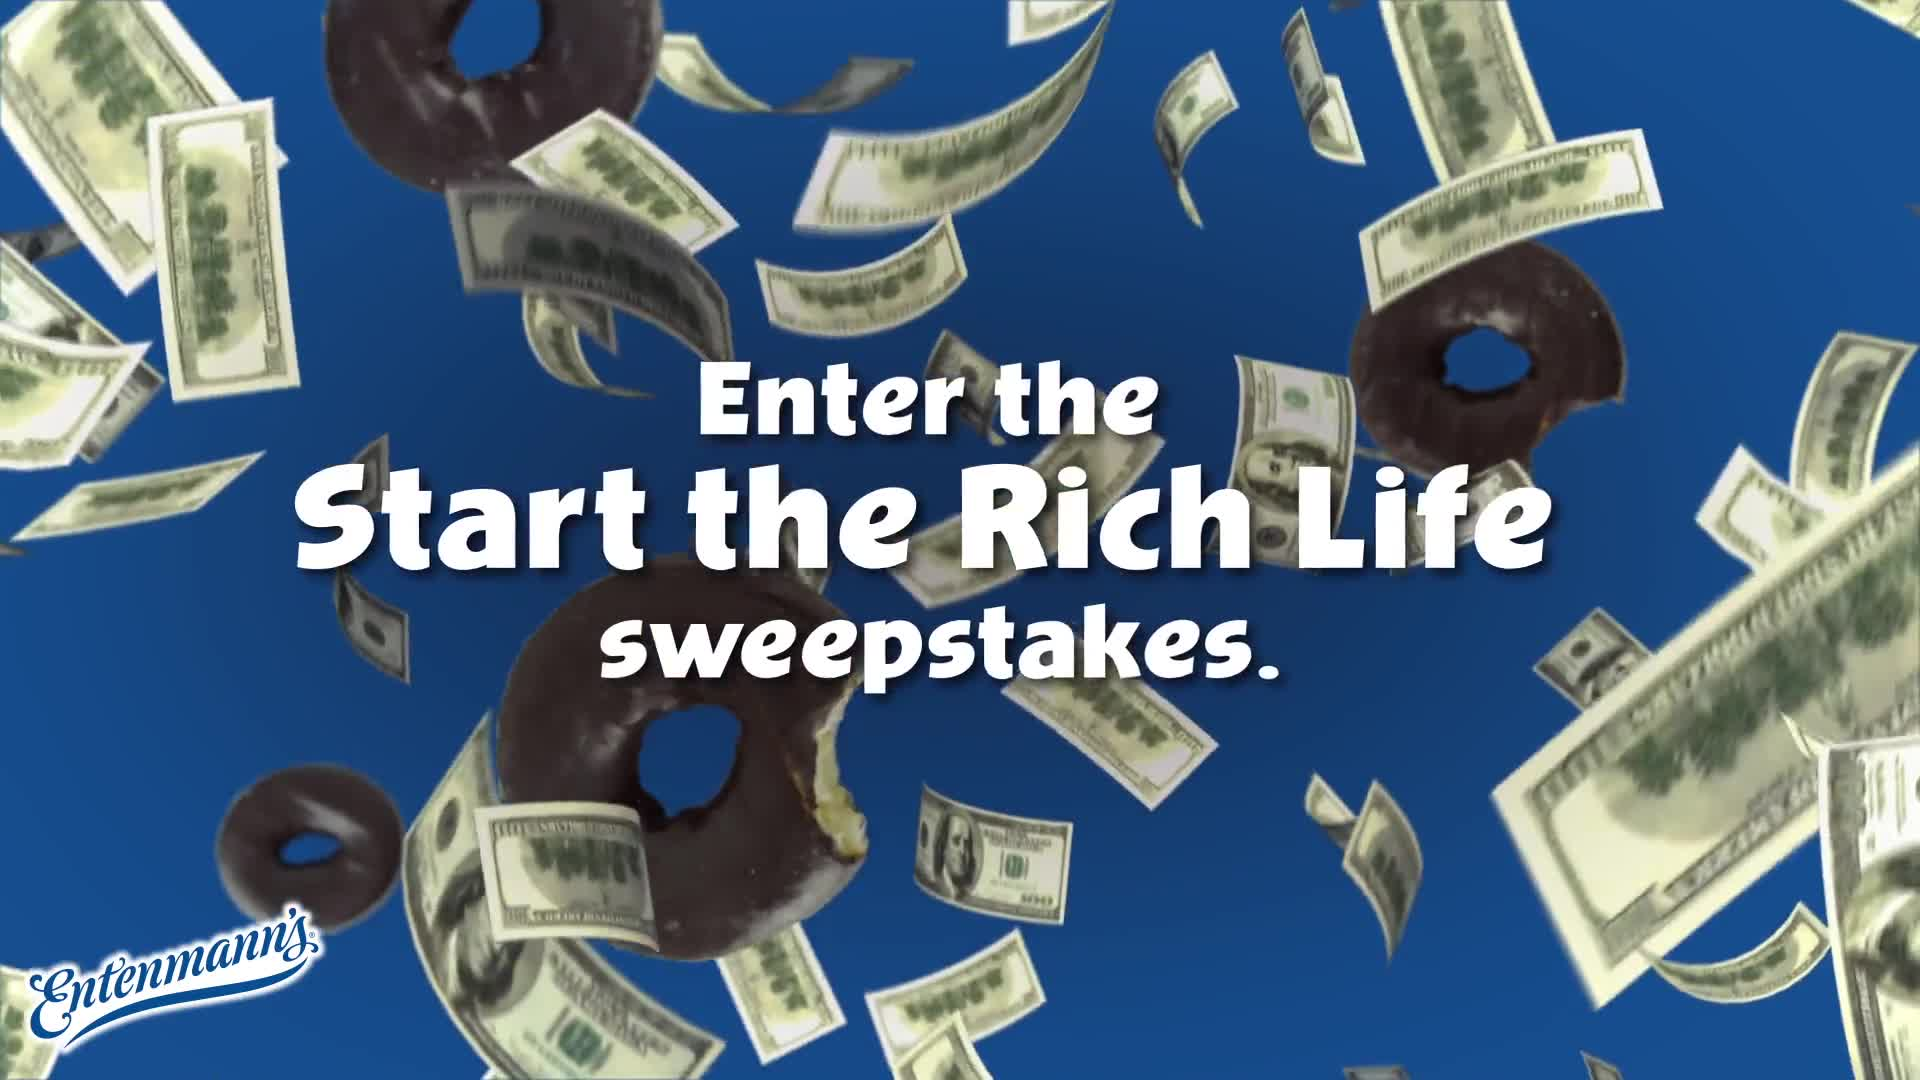 Consumers can start living the Rich Life in 2016 with Entenmann's(R) Rich Frosted Donuts. Entenmann's Start The Rich Life Sweepstakes' Kicks off January 11 with $15, 000 in 'dough' up for grabs.